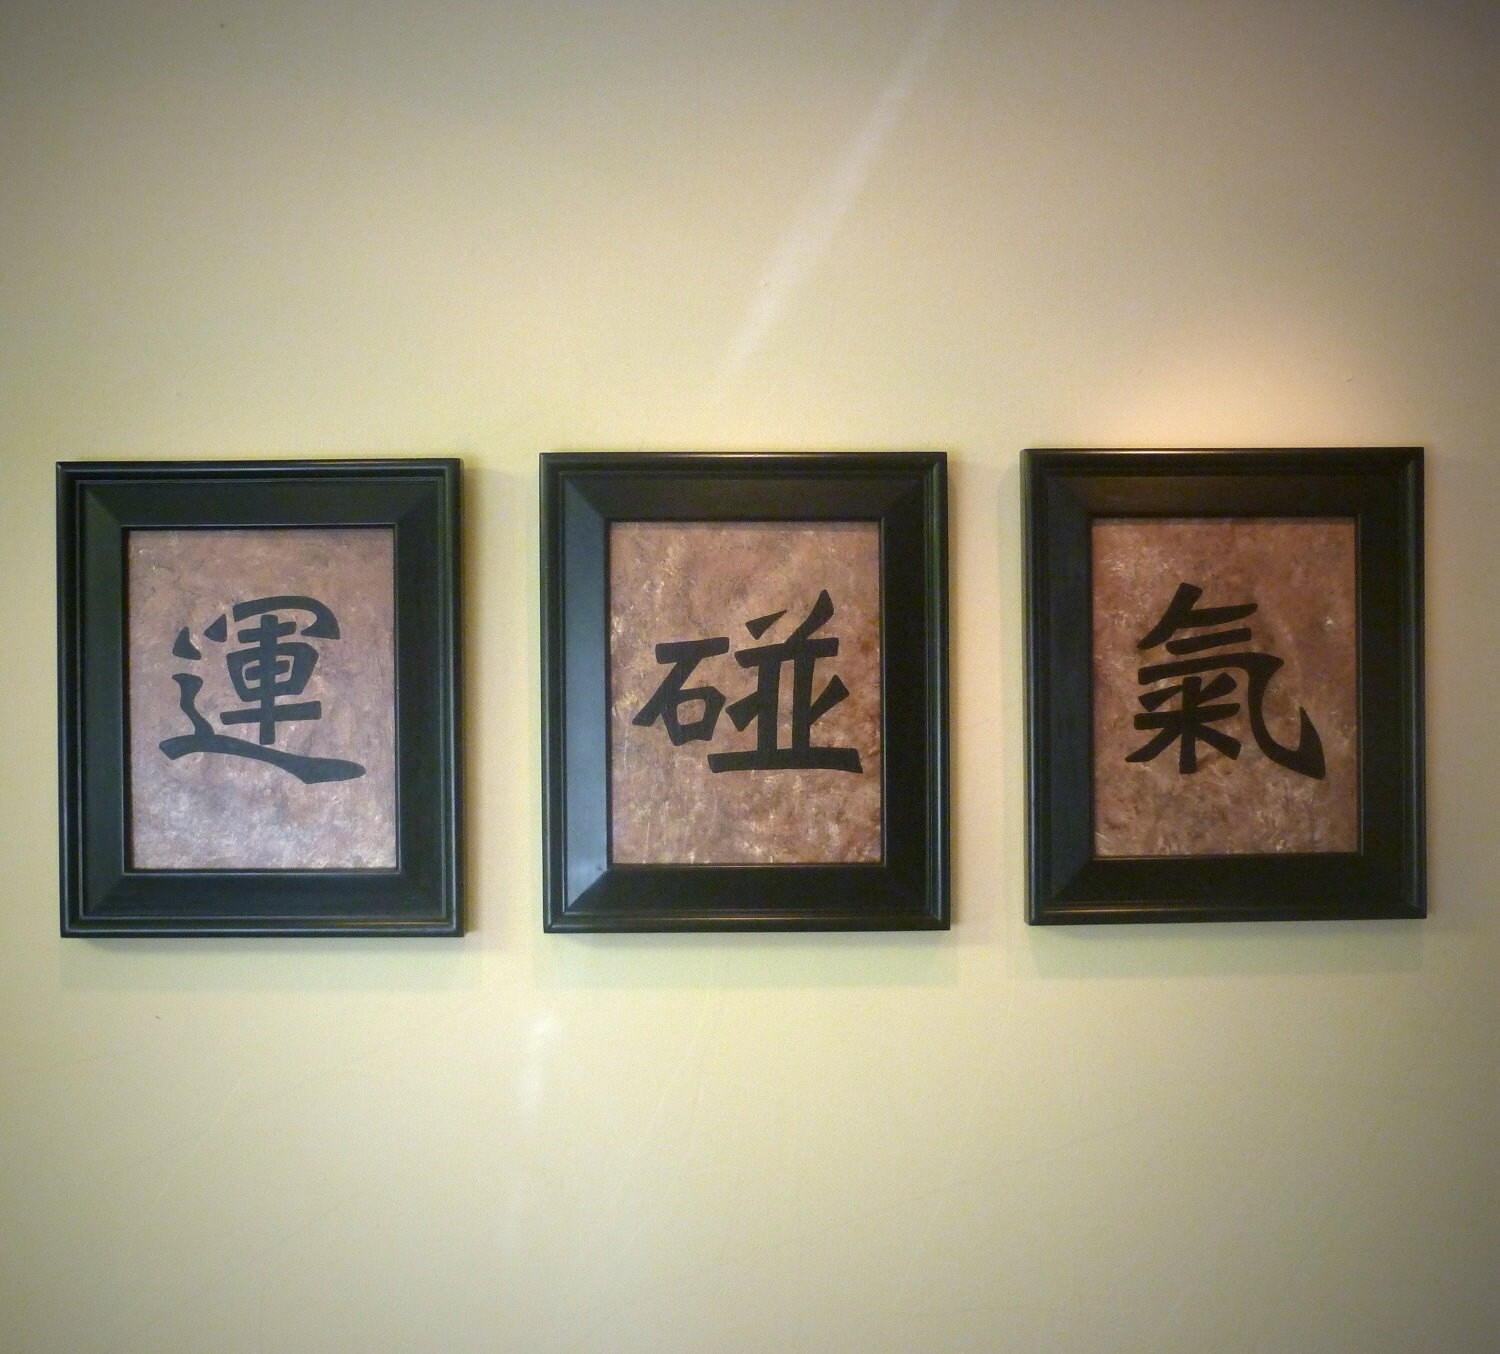 Zen Wall Decor Unique Take A Chance Asian Zen Chinese Symbol Wall Within Most Recently Released Asian Wall Art (Gallery 15 of 15)